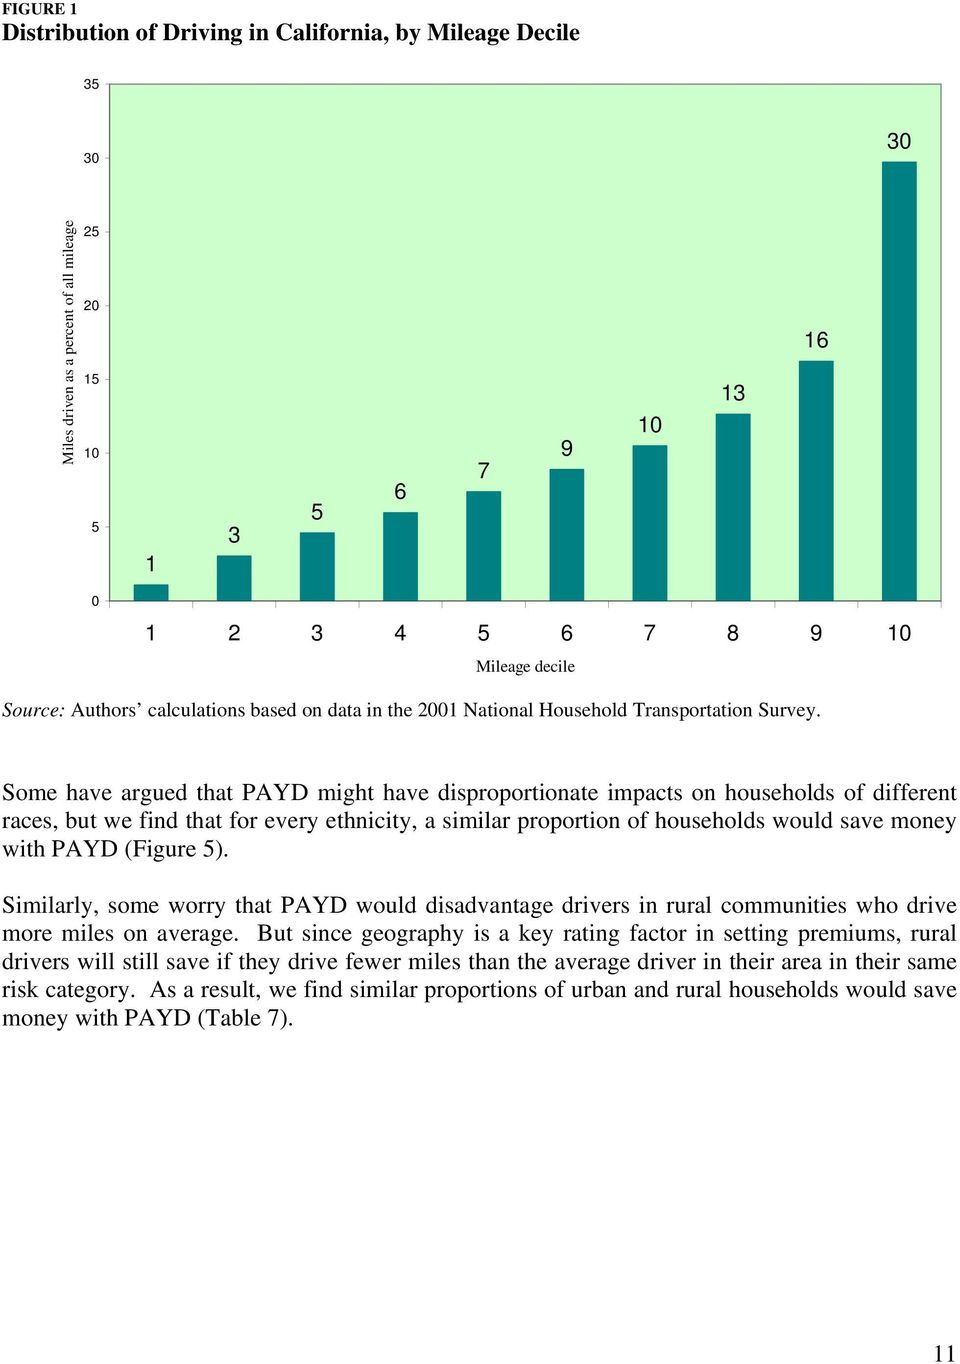 Some have argued that PAYD might have disproportionate impacts on households of different races, but we find that for every ethnicity, a similar proportion of households would save money with PAYD